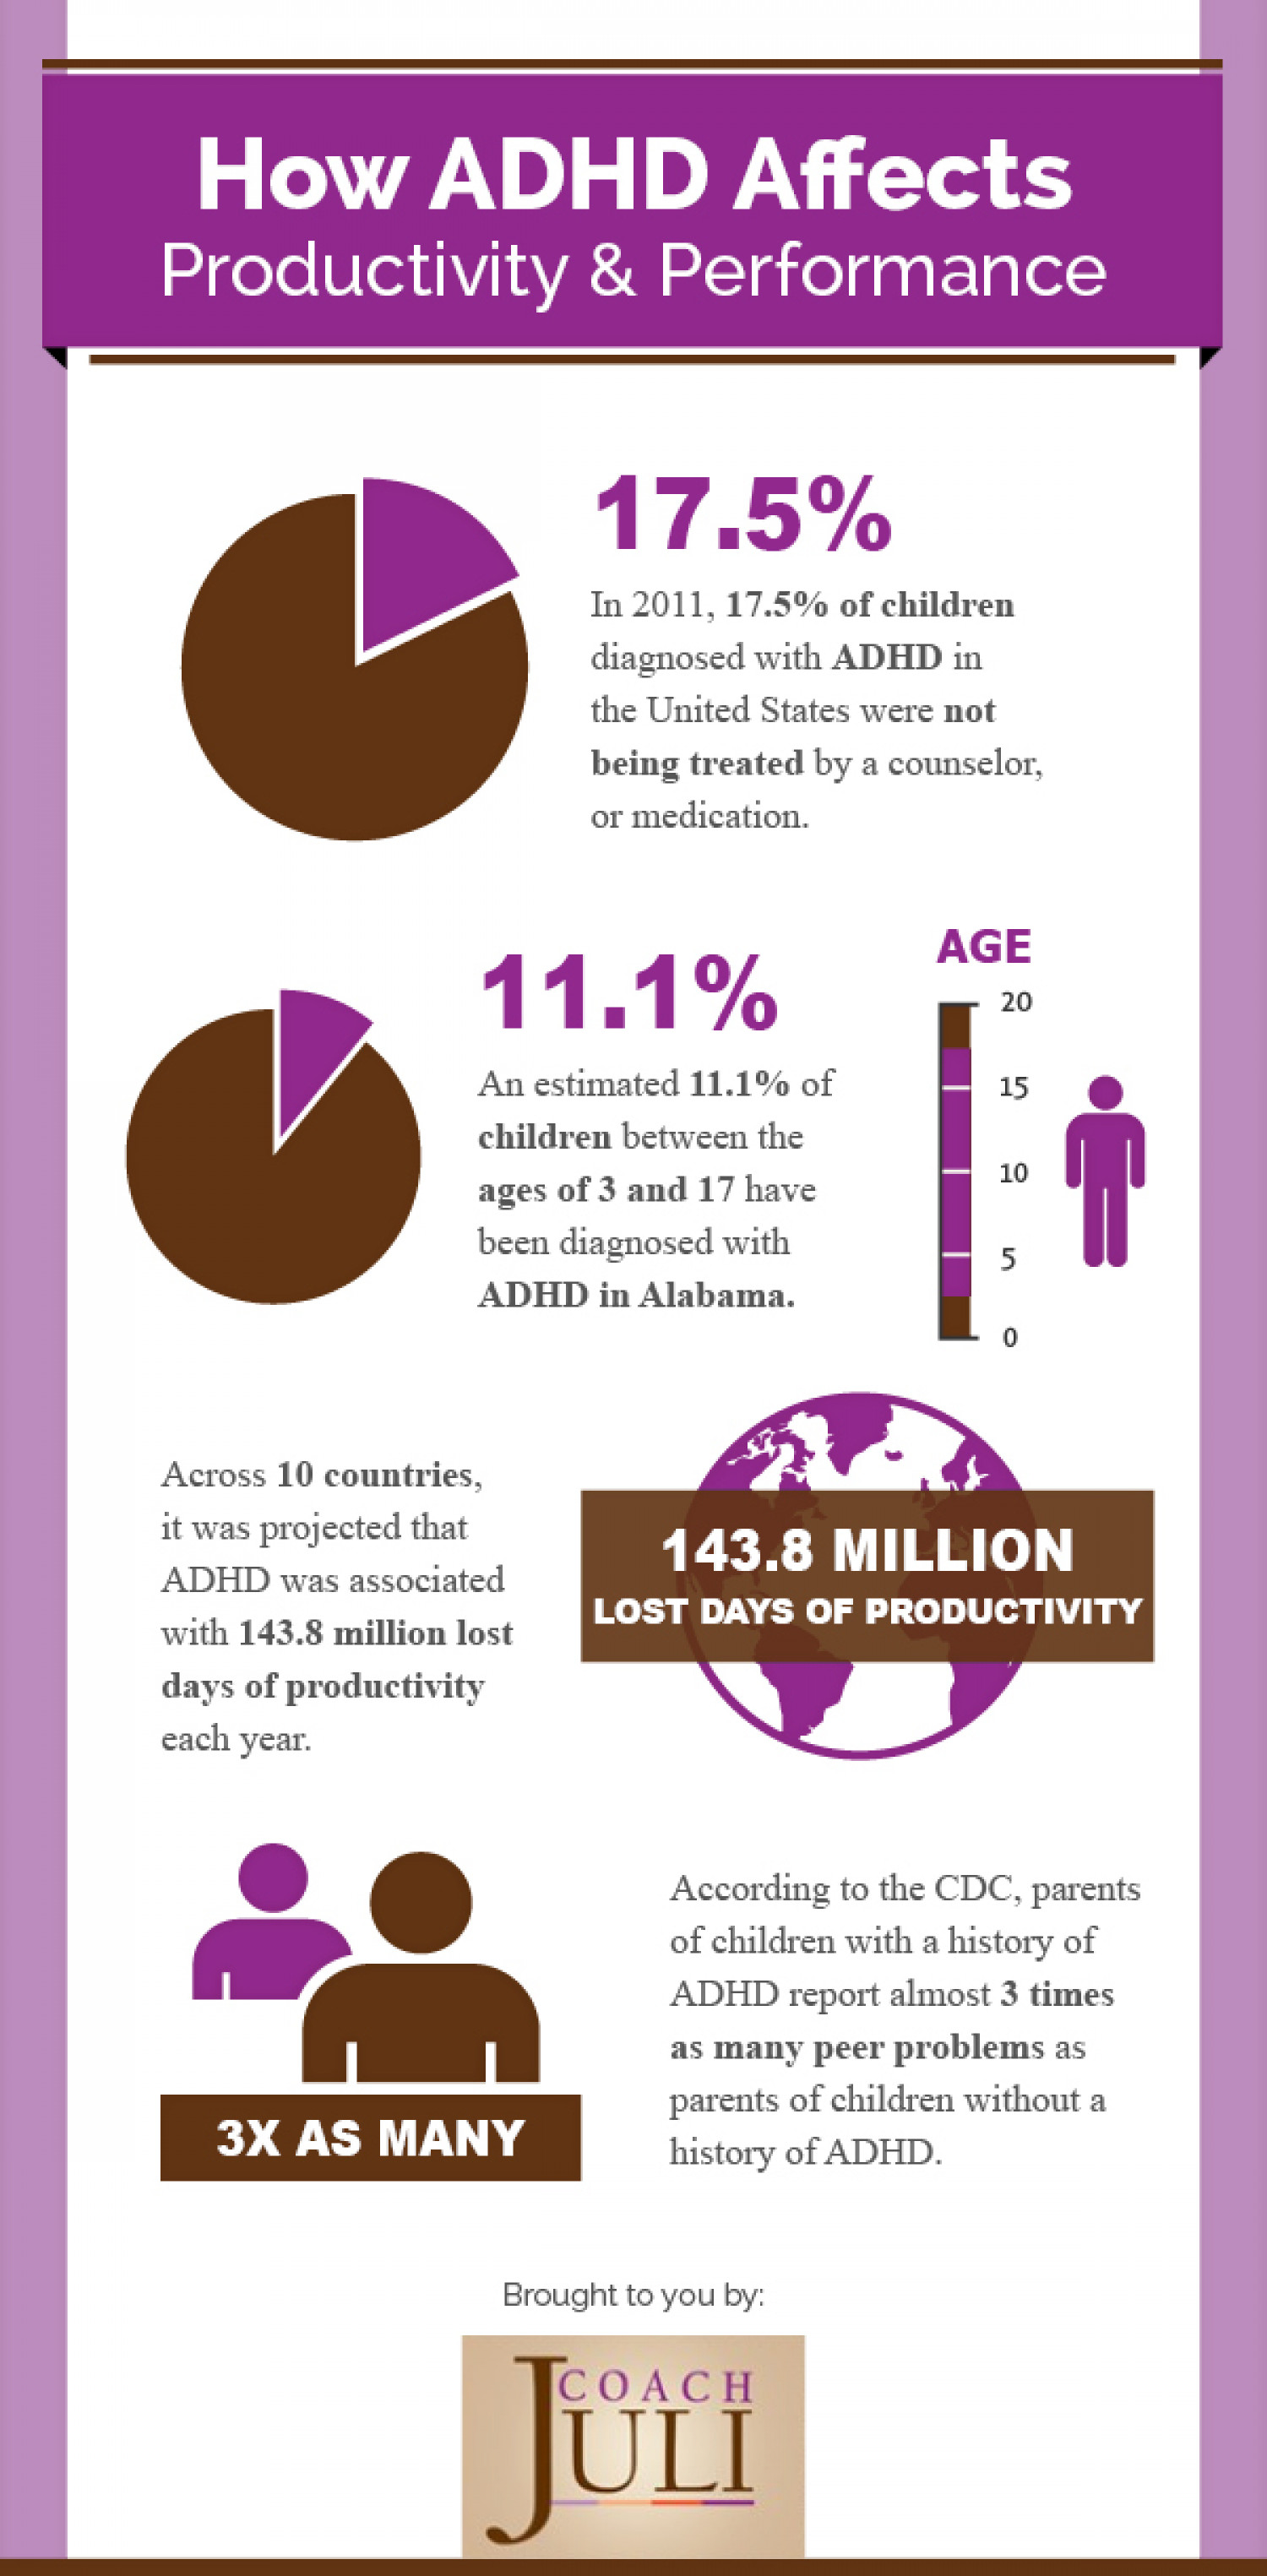 How ADHD Affects Productivity & Performance Infographic